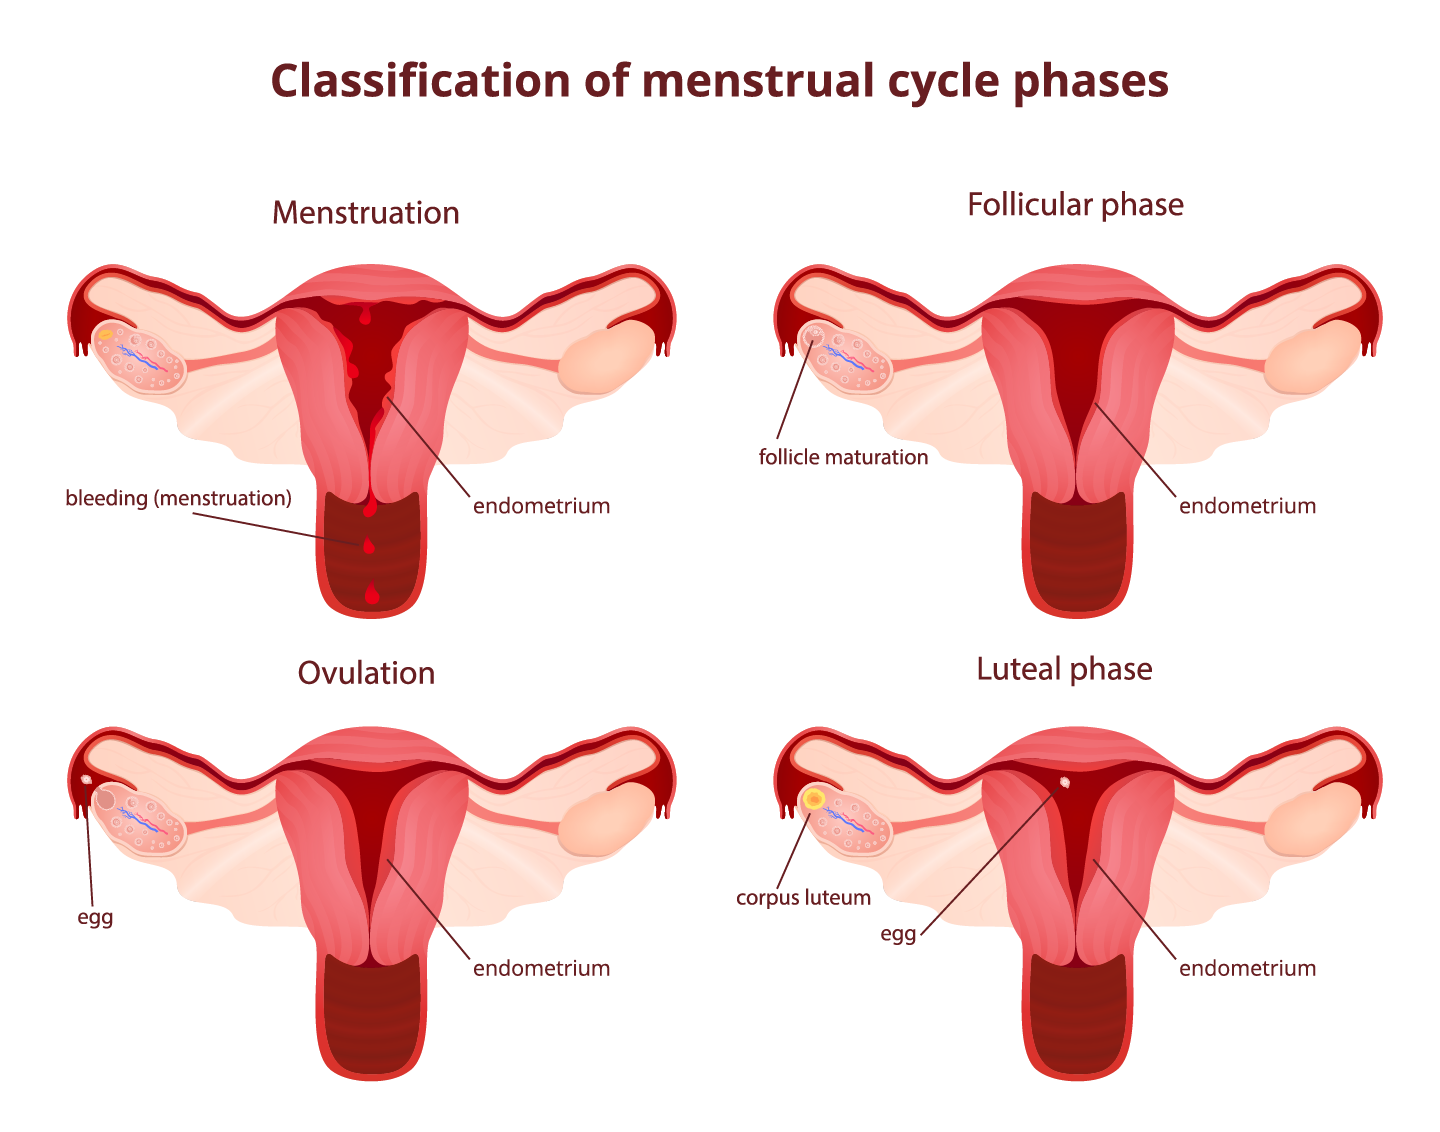 Phases of a woman's menstrual cycle